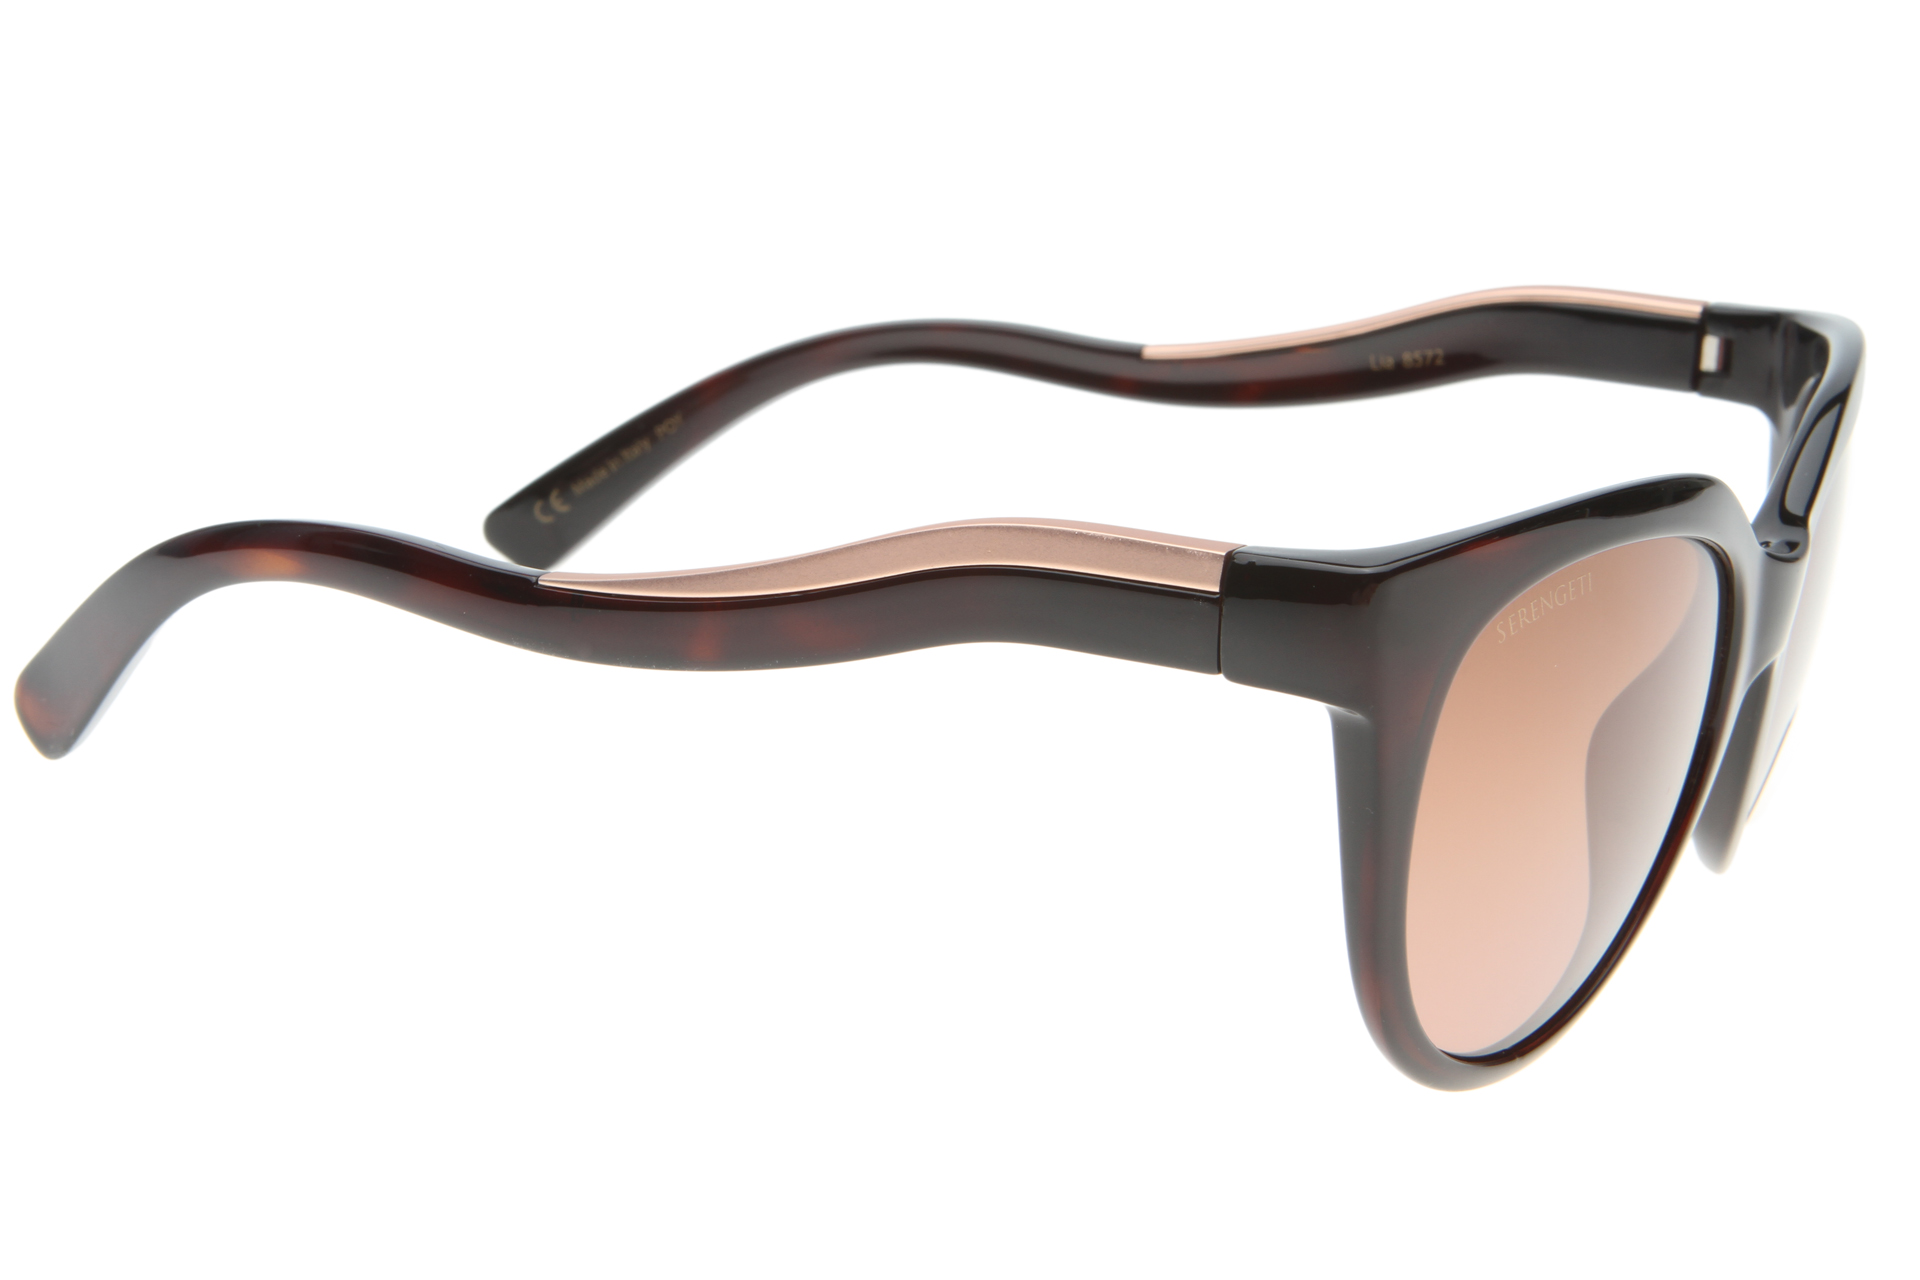 Serengeti Lia 8572 (Shiny Dark Tortoise/Satin Rose Gold) Gepolariseerd, Gradient